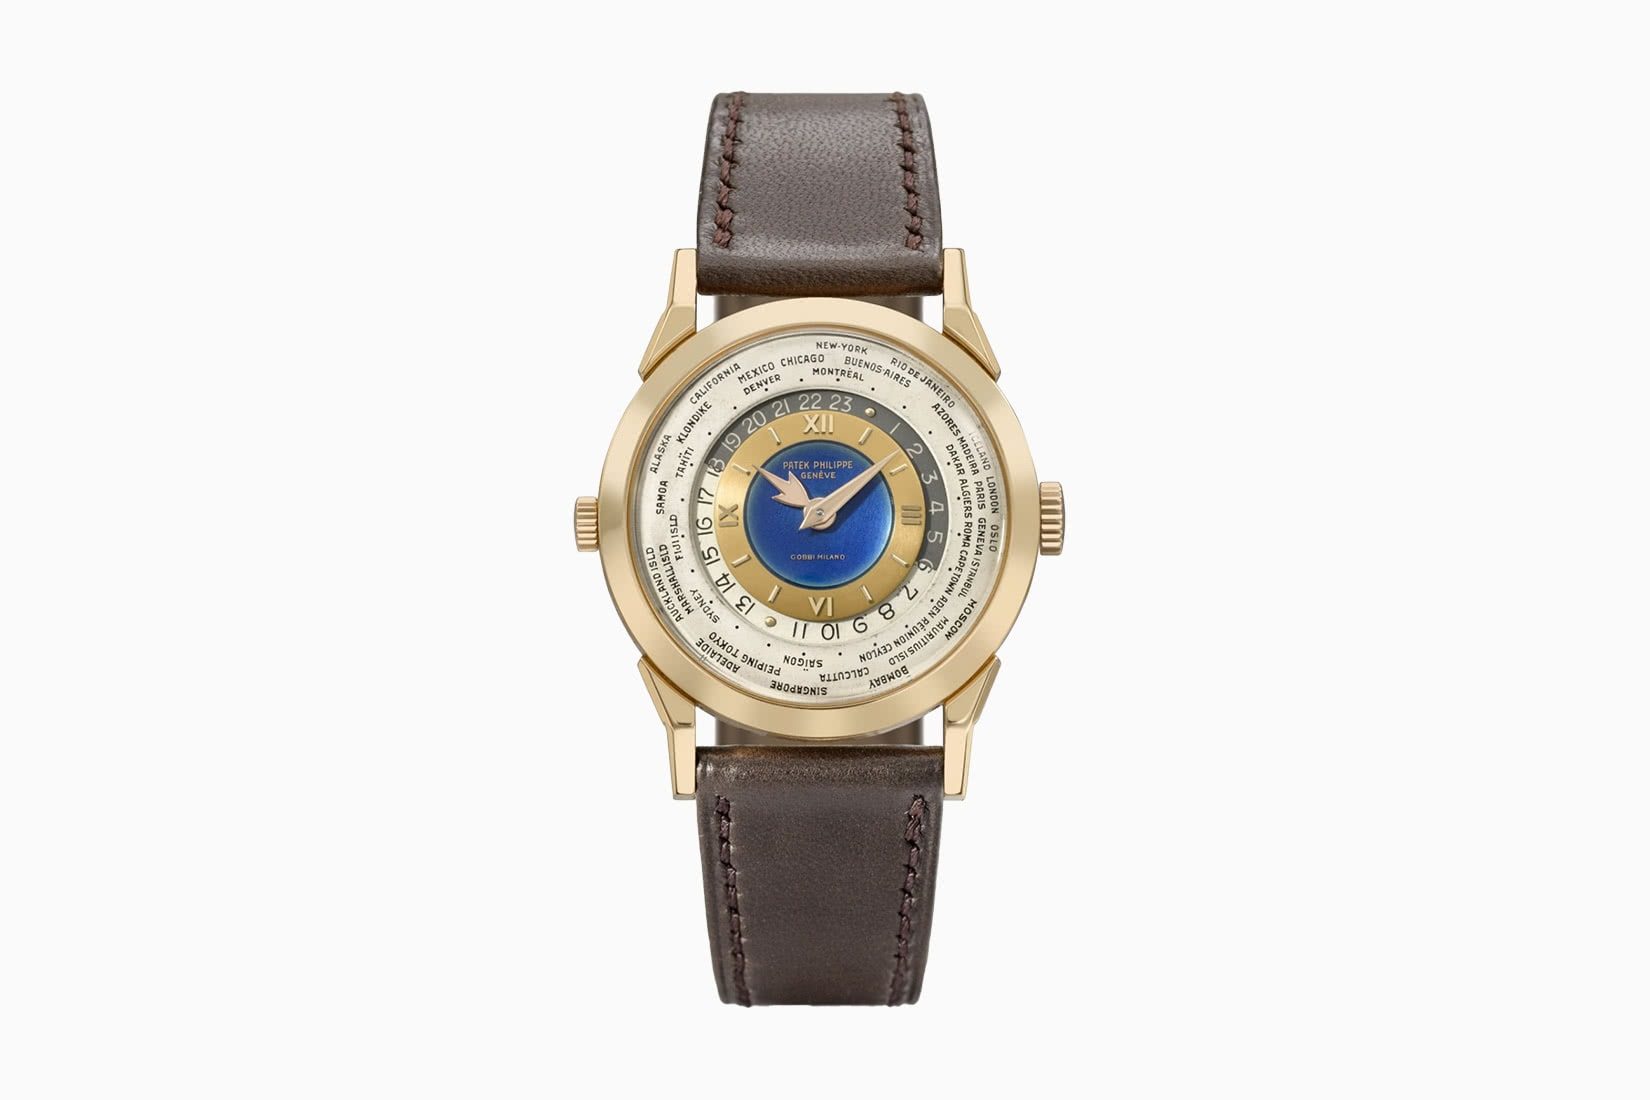 most expensive watches patek philippe gobbi milan heures universelles ref 2523 - Luxe Digital